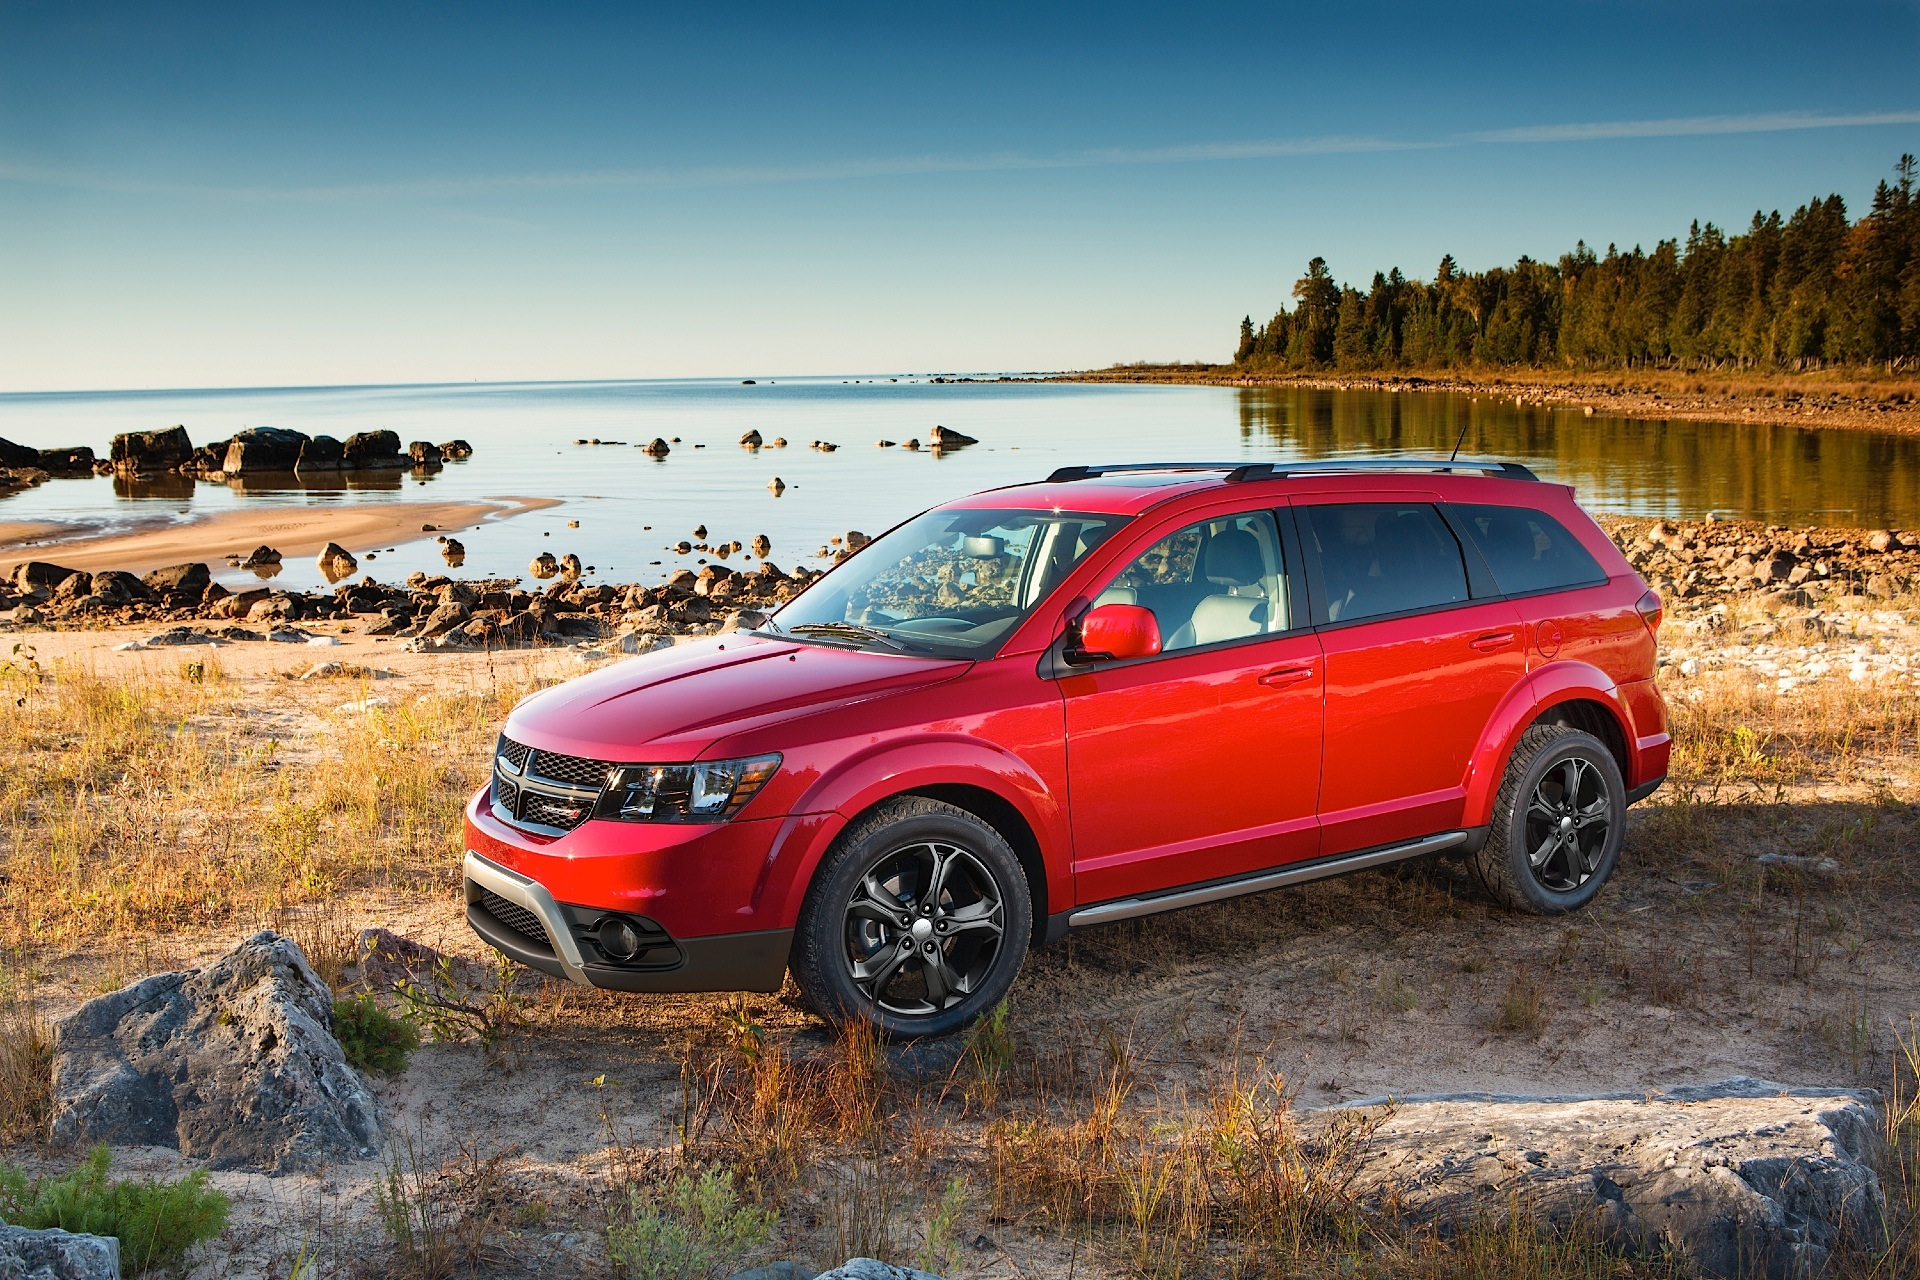 2014 Dodge Journey Tire Size >> Dodge Journey Specs Photos 2014 2015 2016 2017 2018 2019